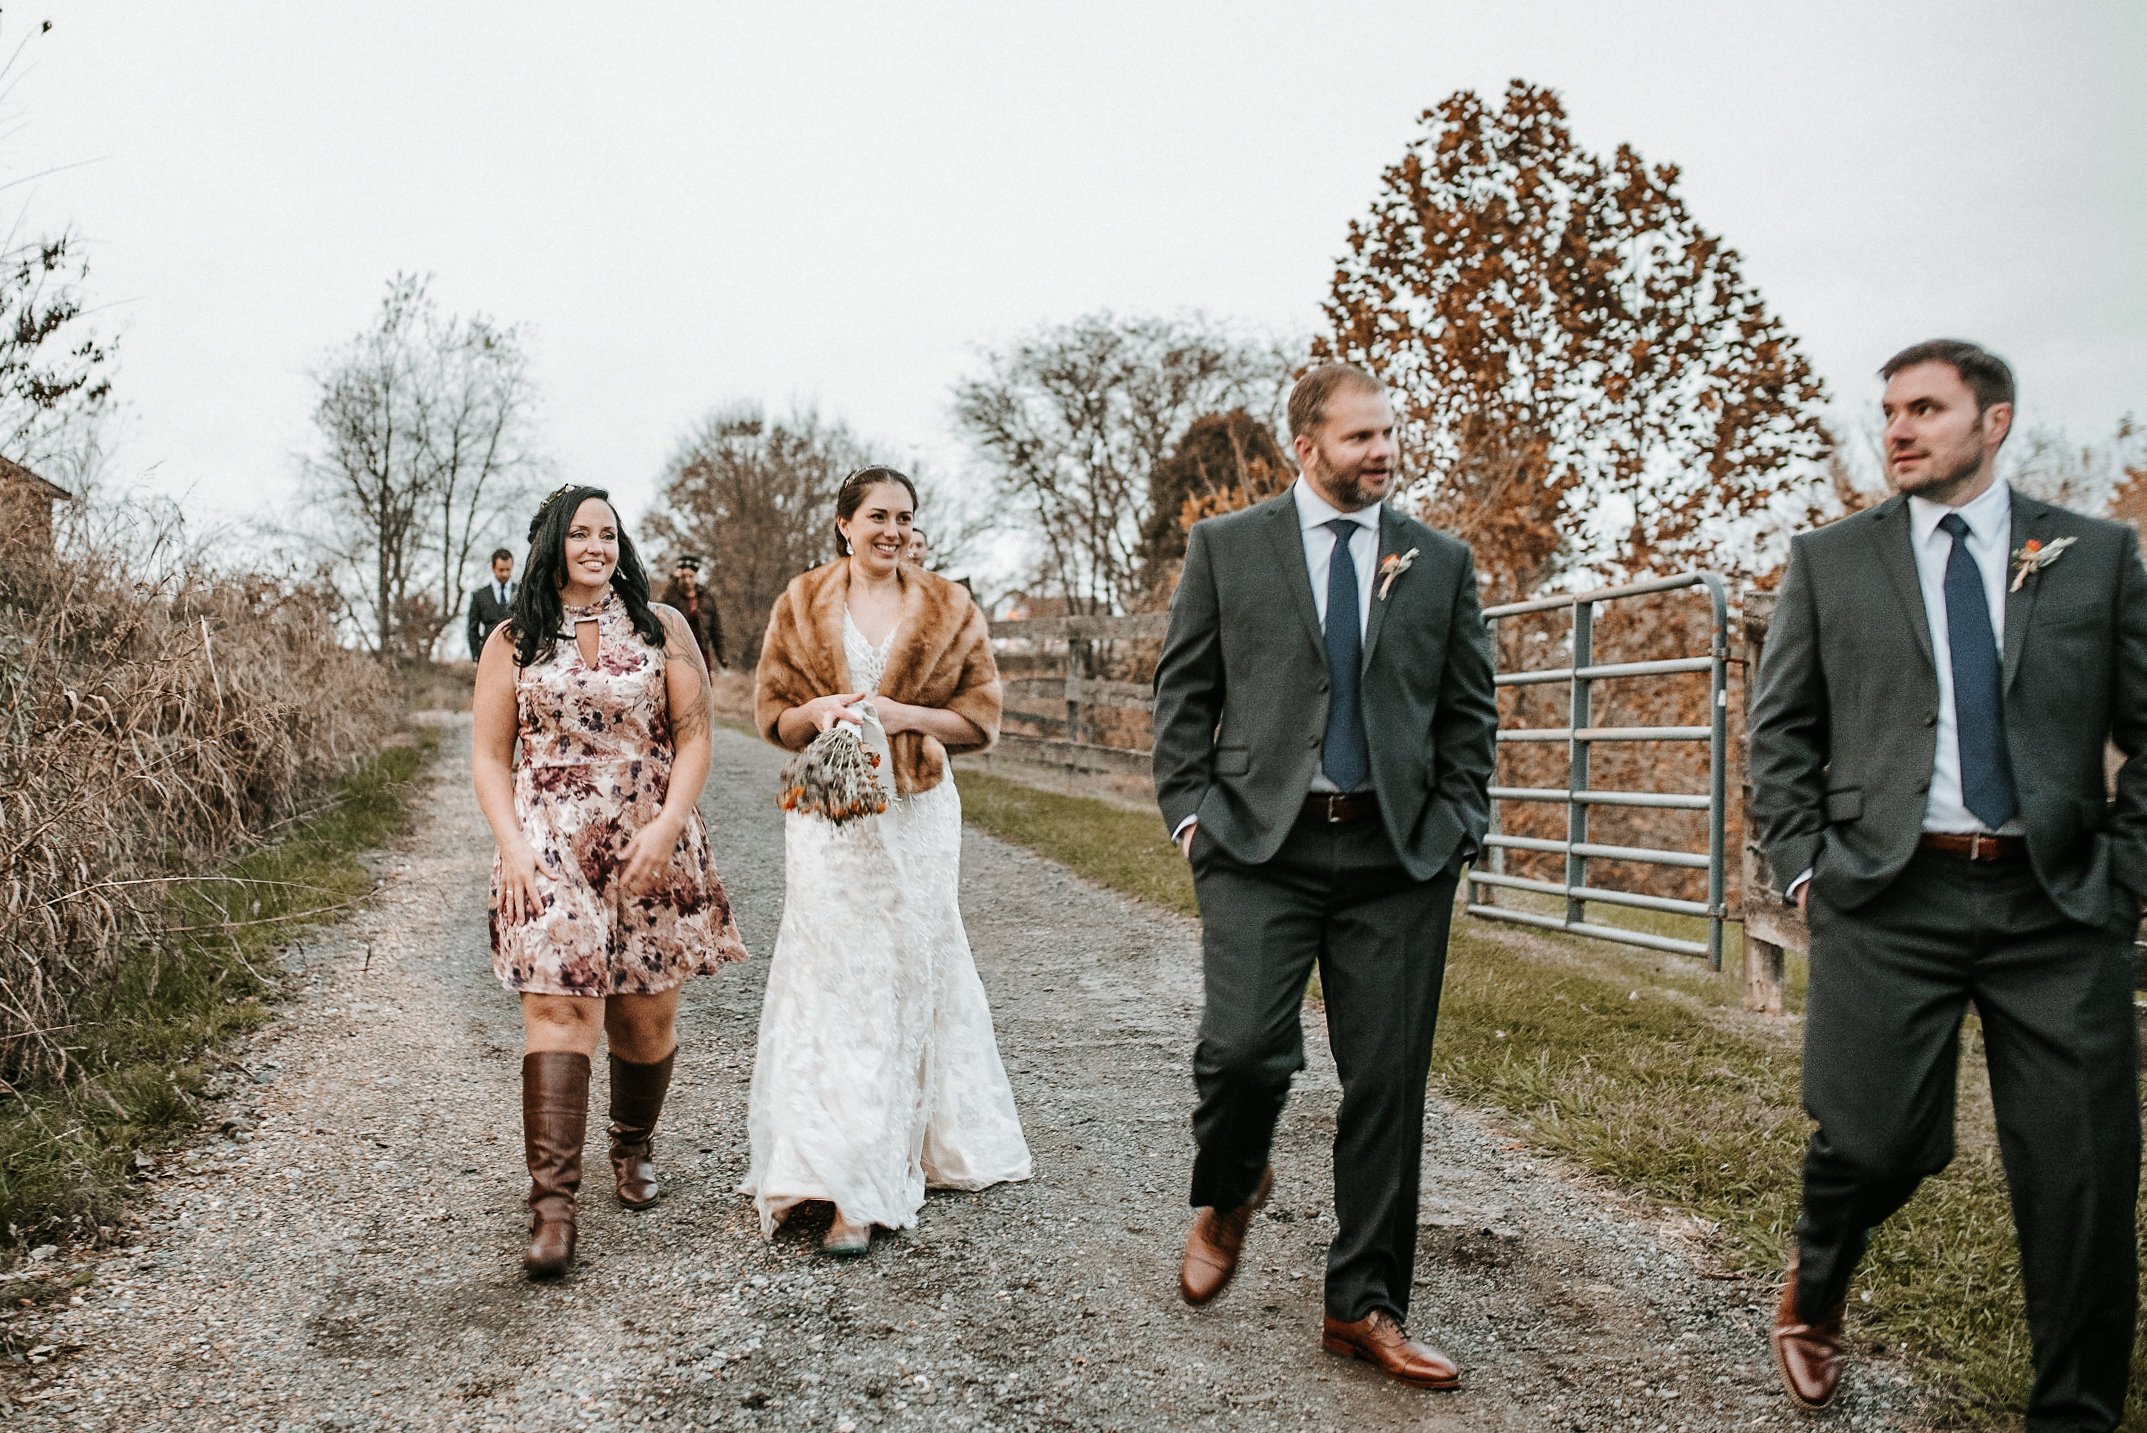 Bridal party walking on gravel road